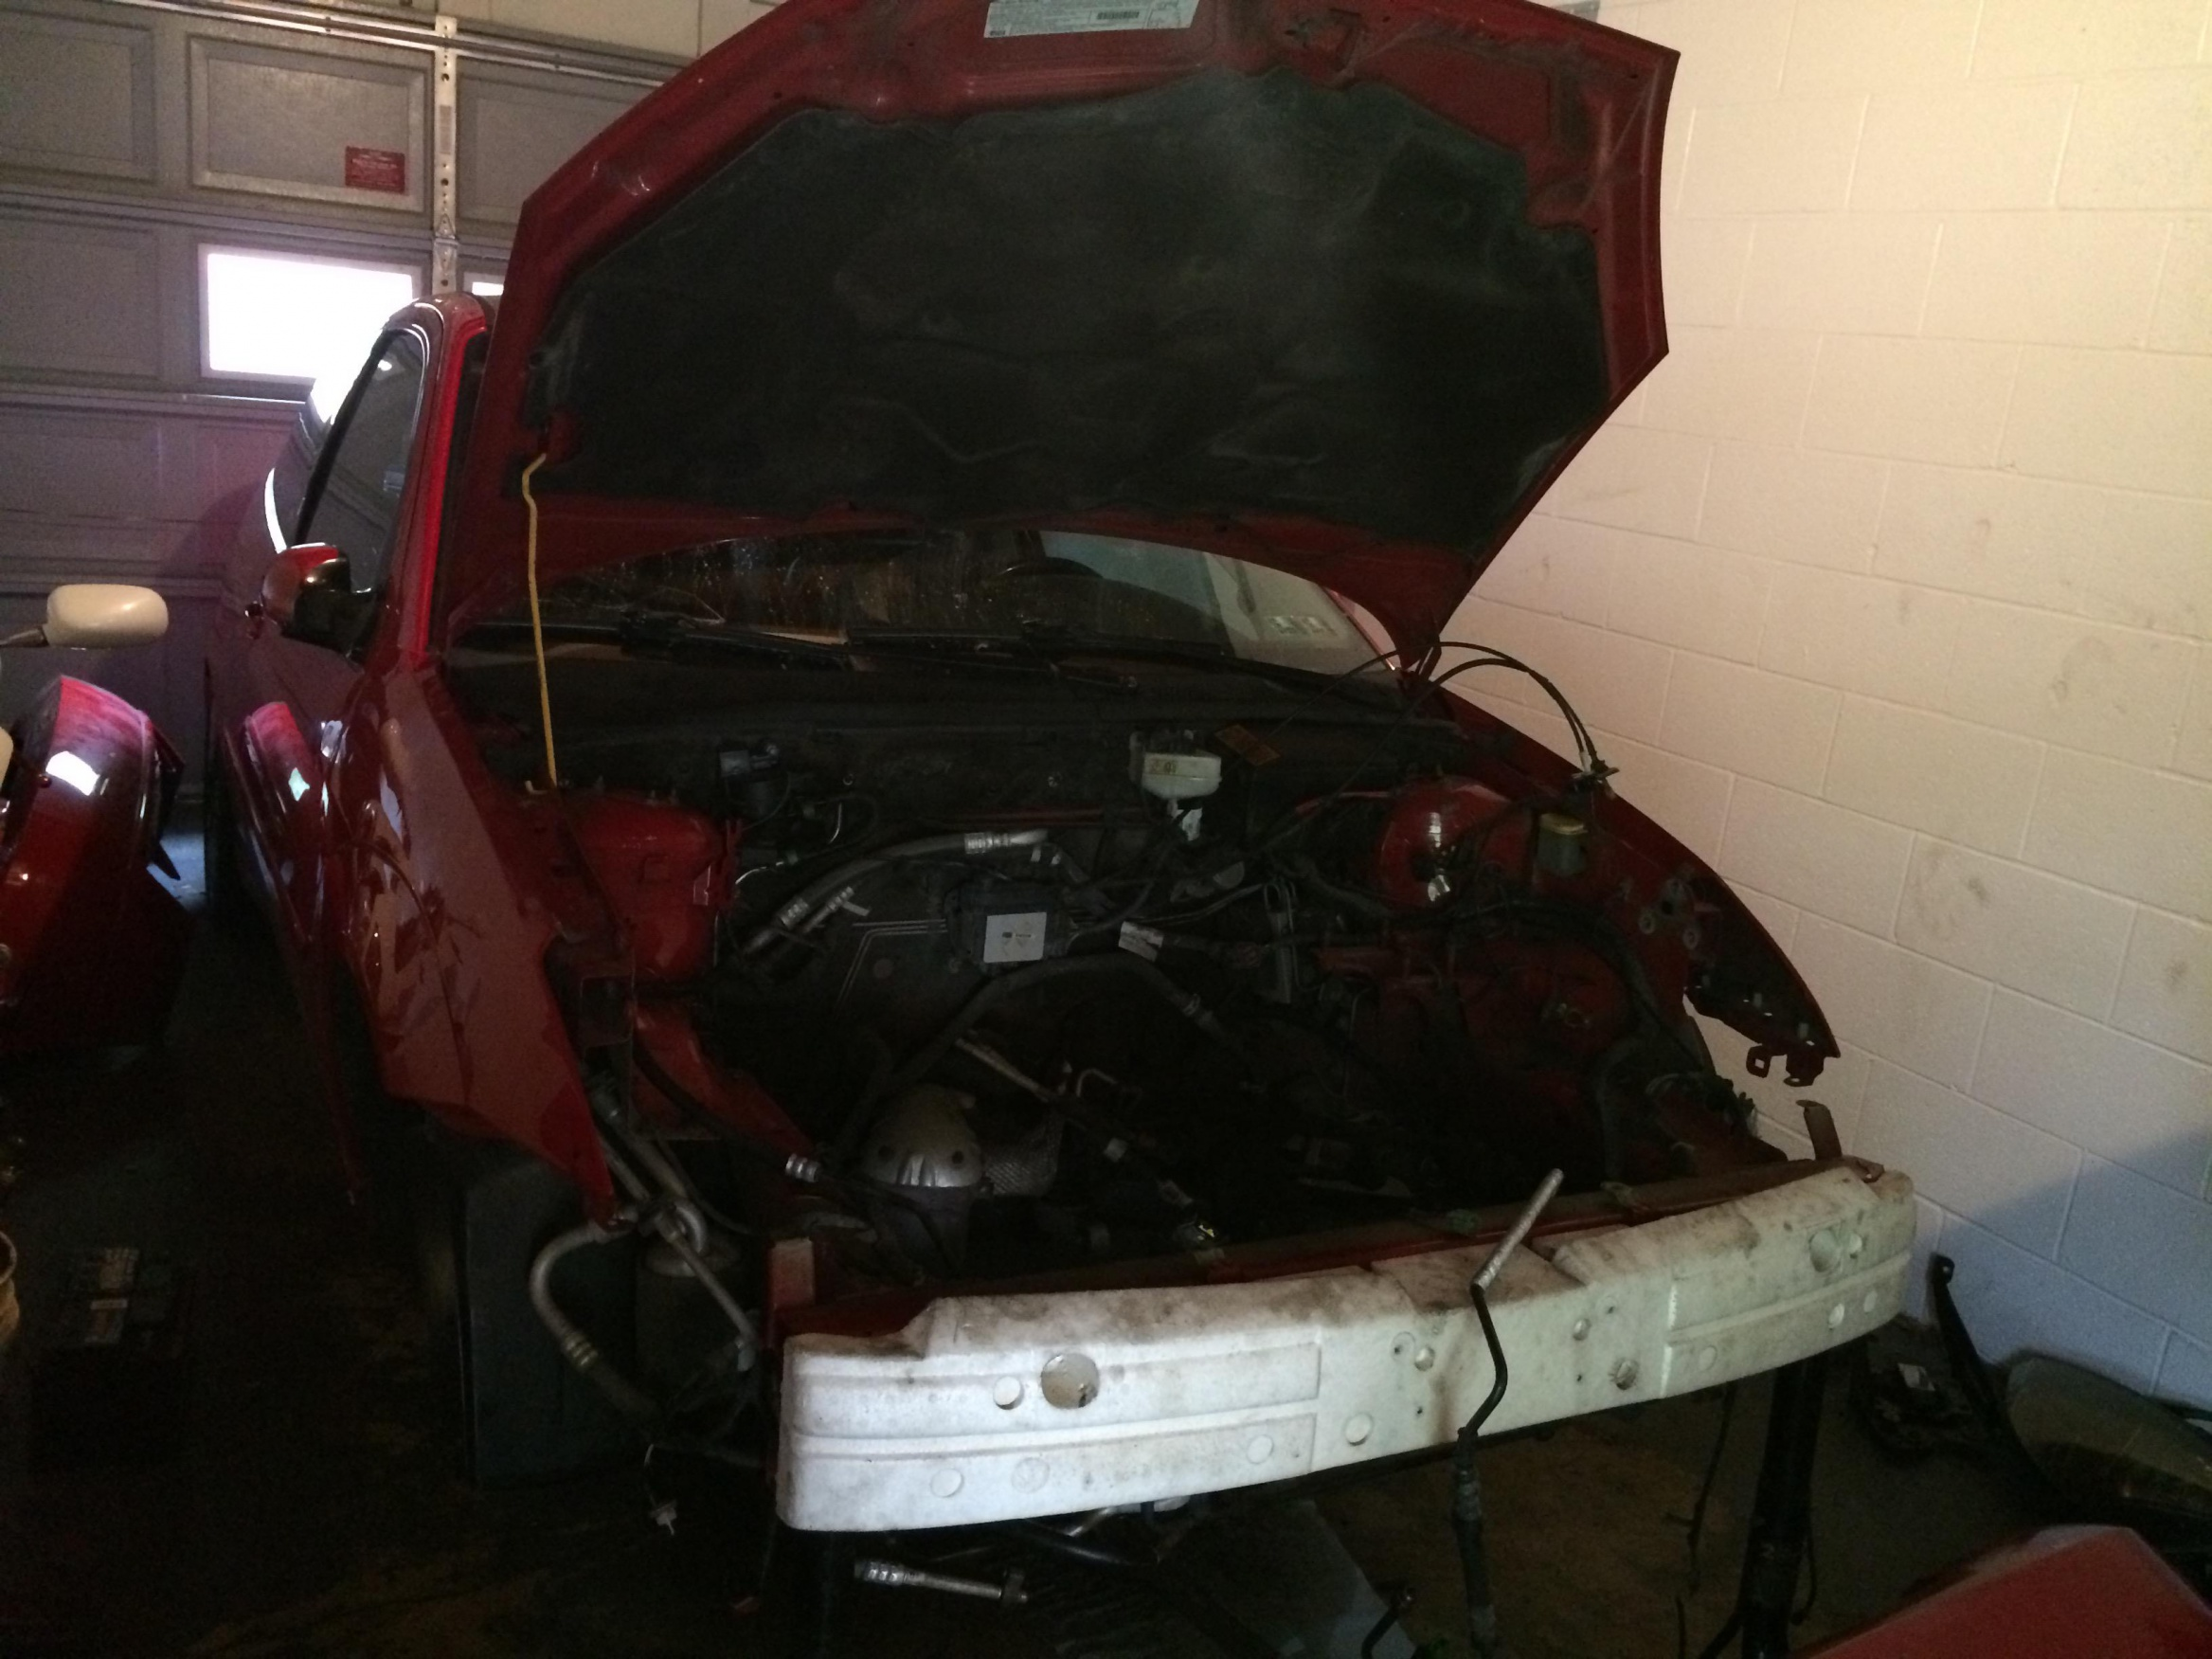 Svt rebuild and forced induction project-img_2207_1485951003336.jpg